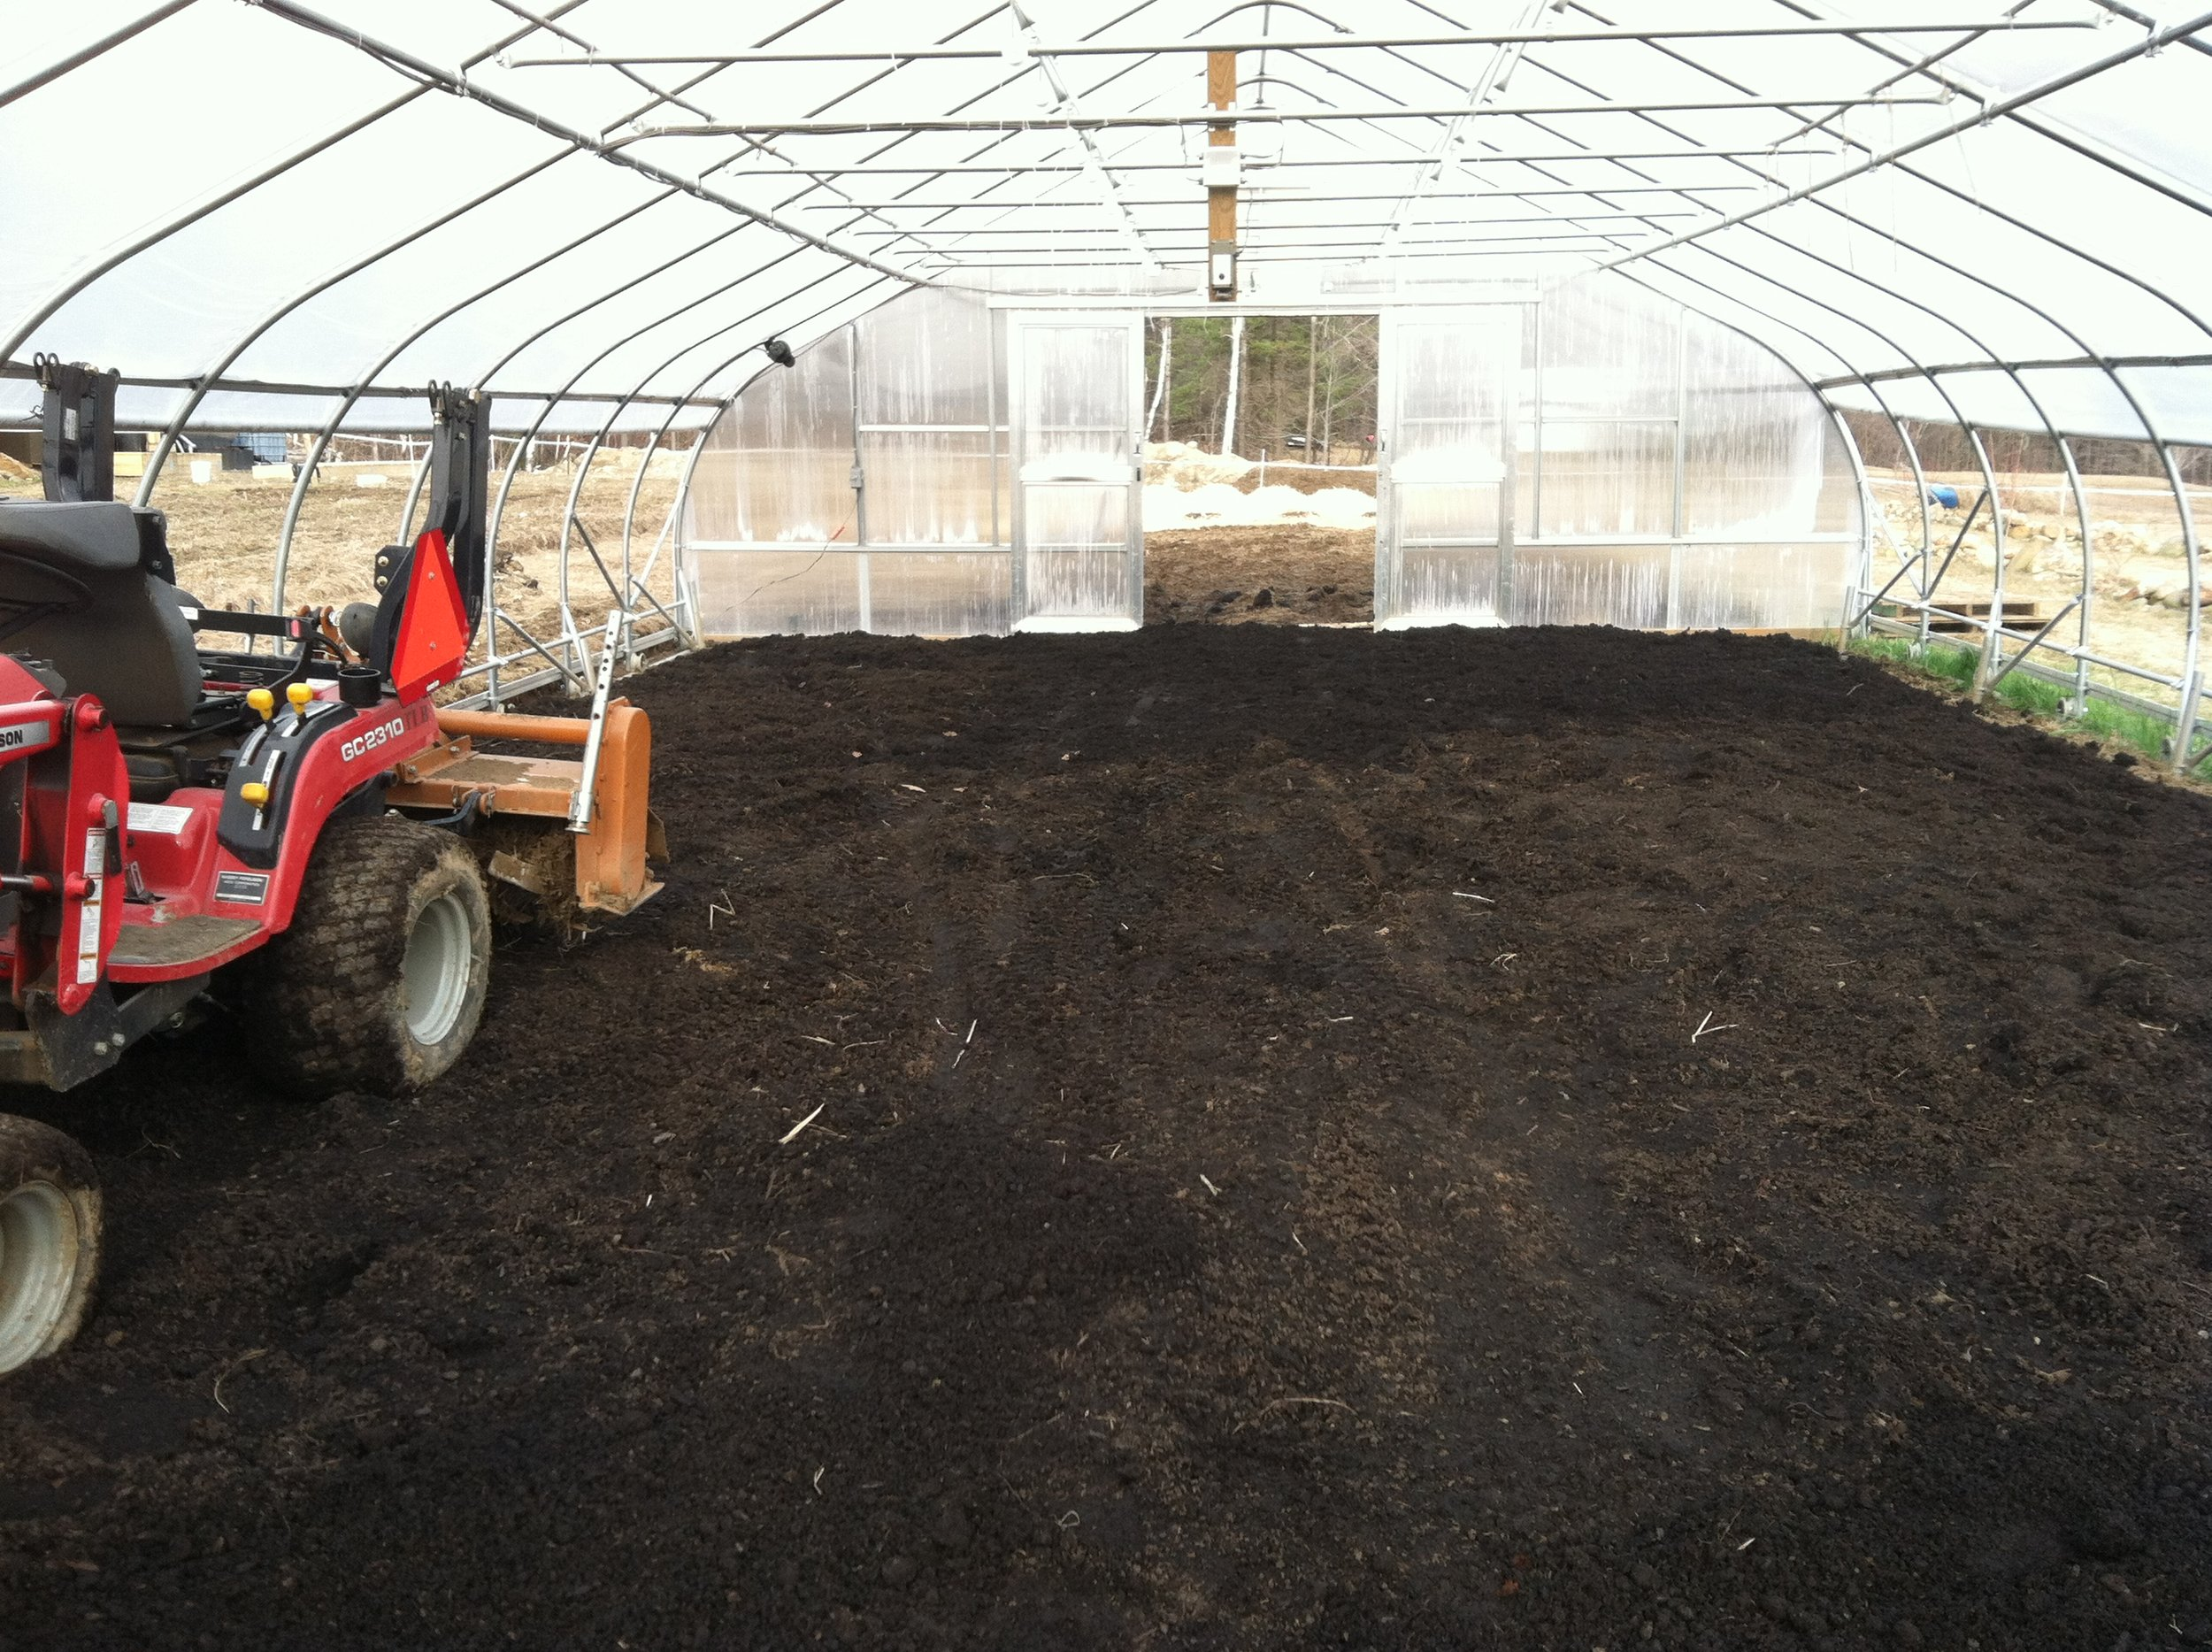 Completely spread, ready to be tilled.